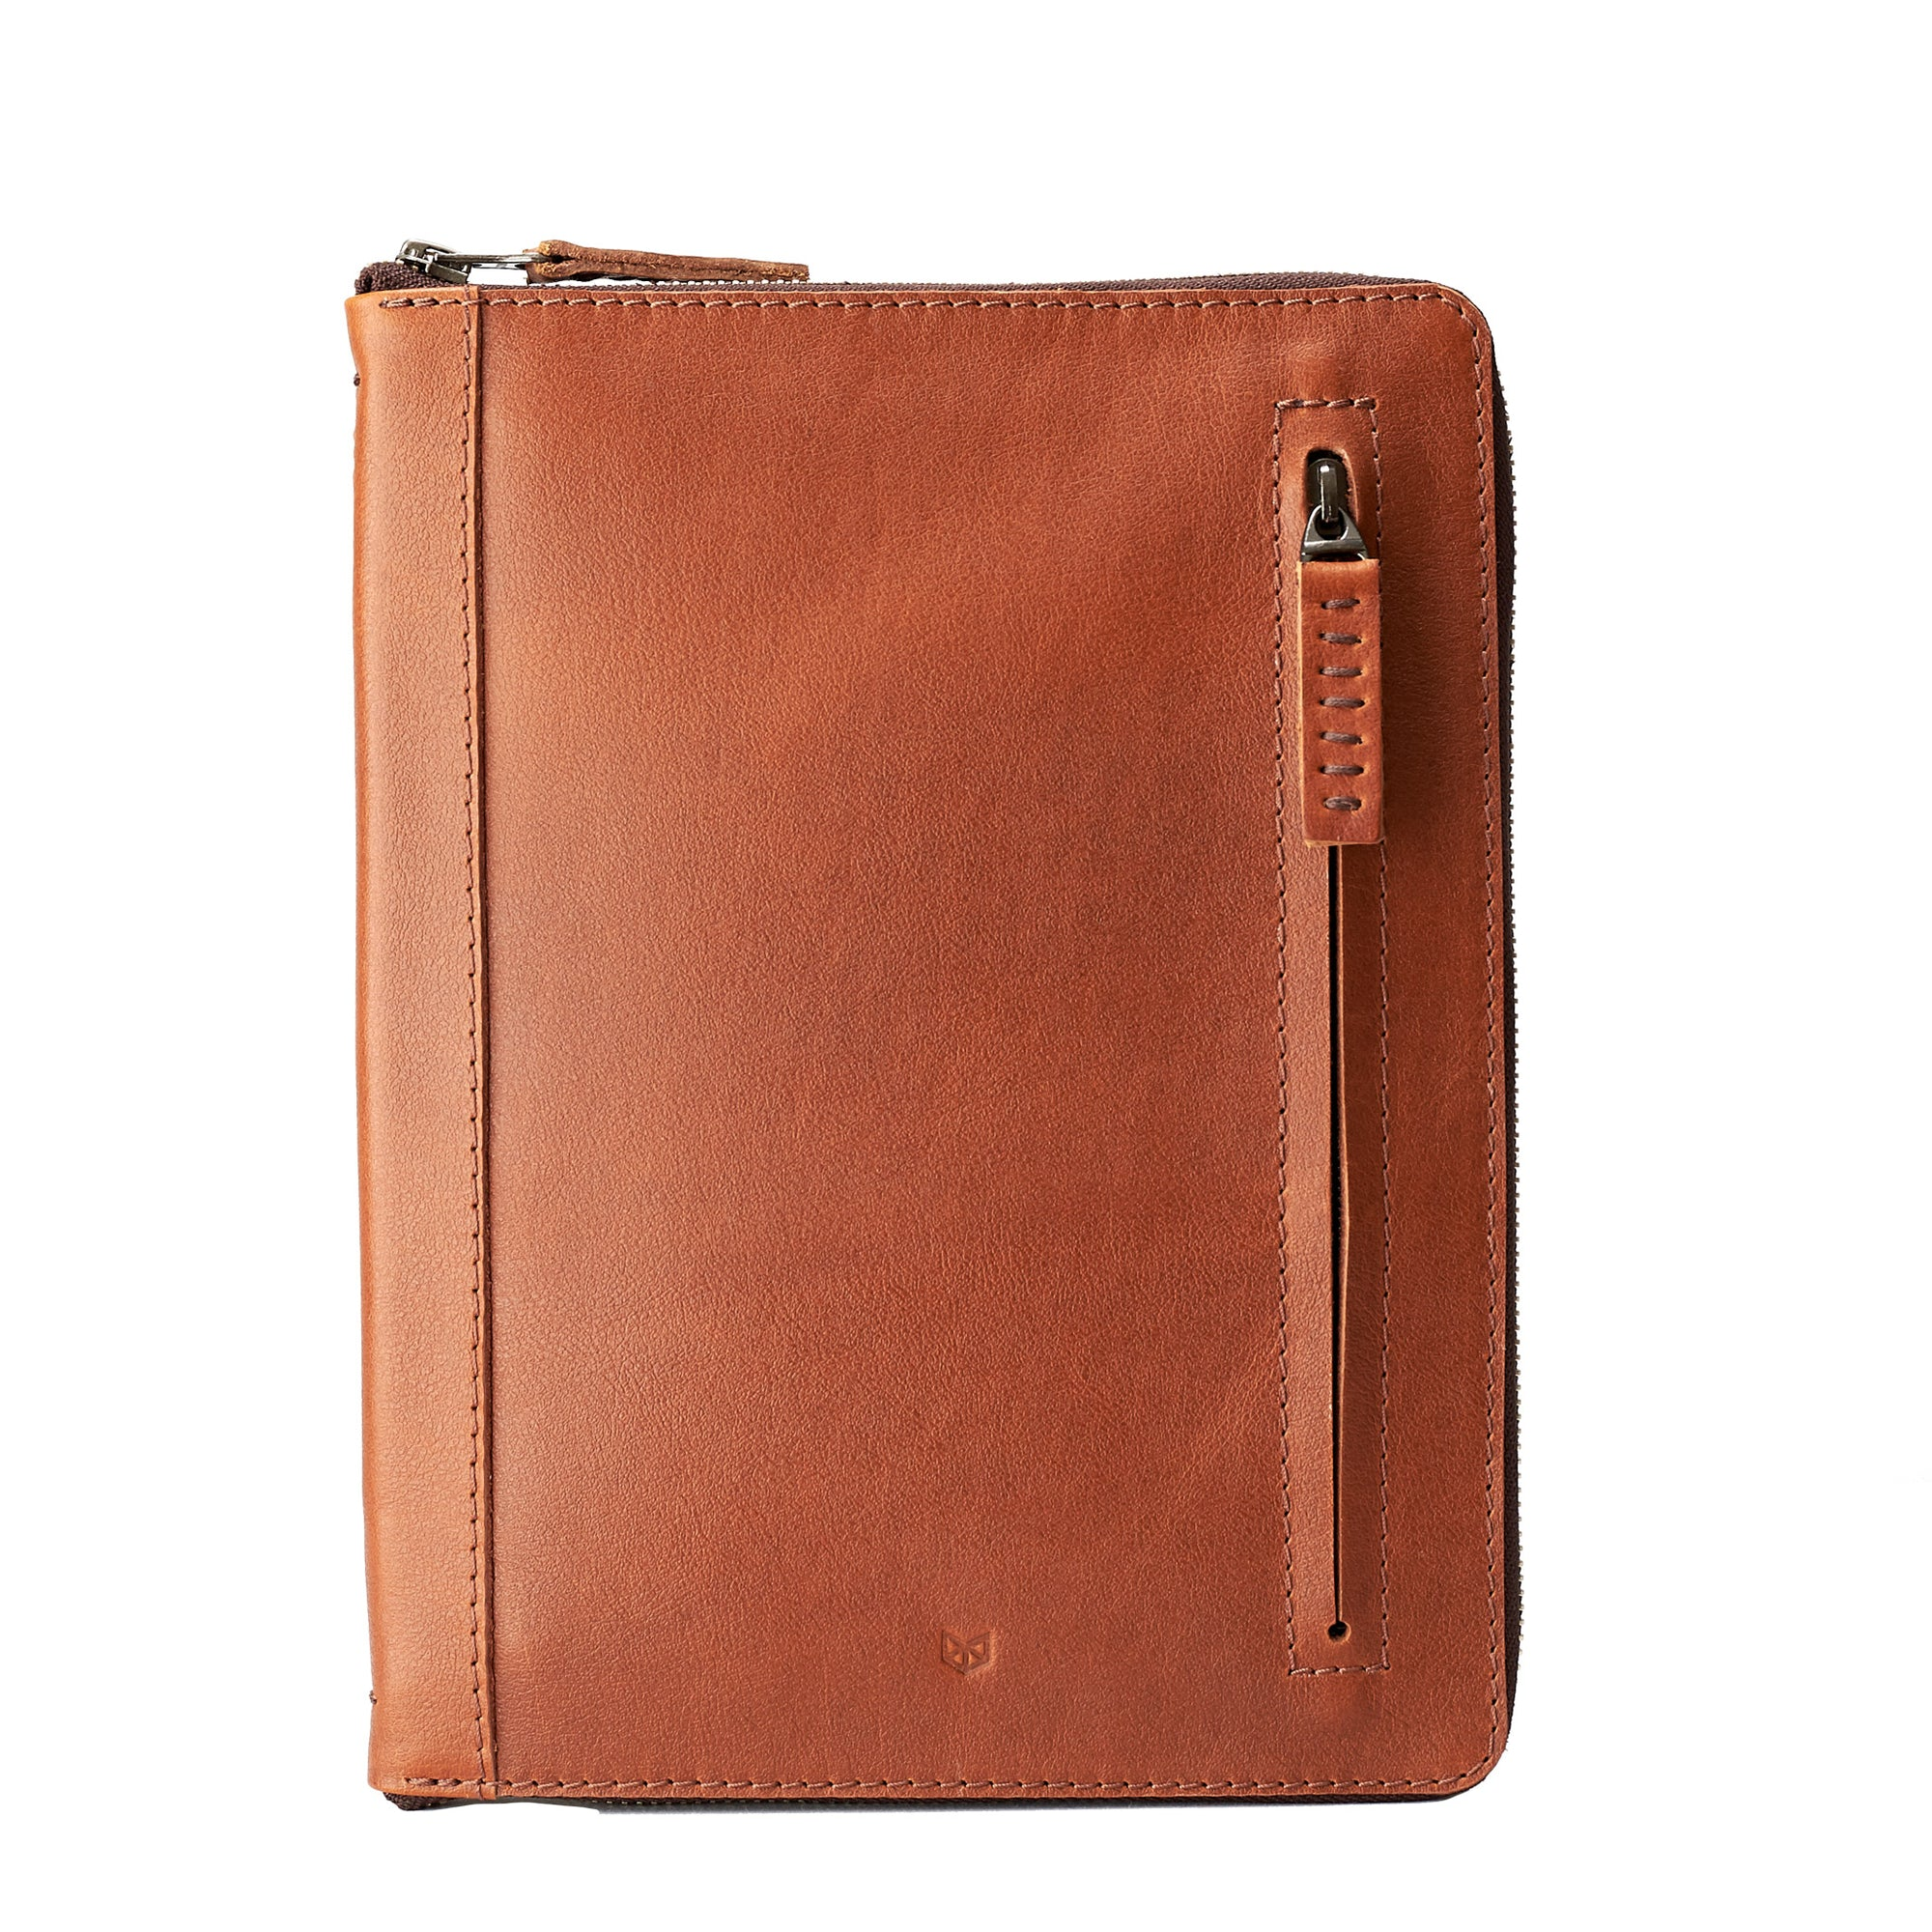 A5 leather notebook cover by Capra Leather. Gifts for artists.